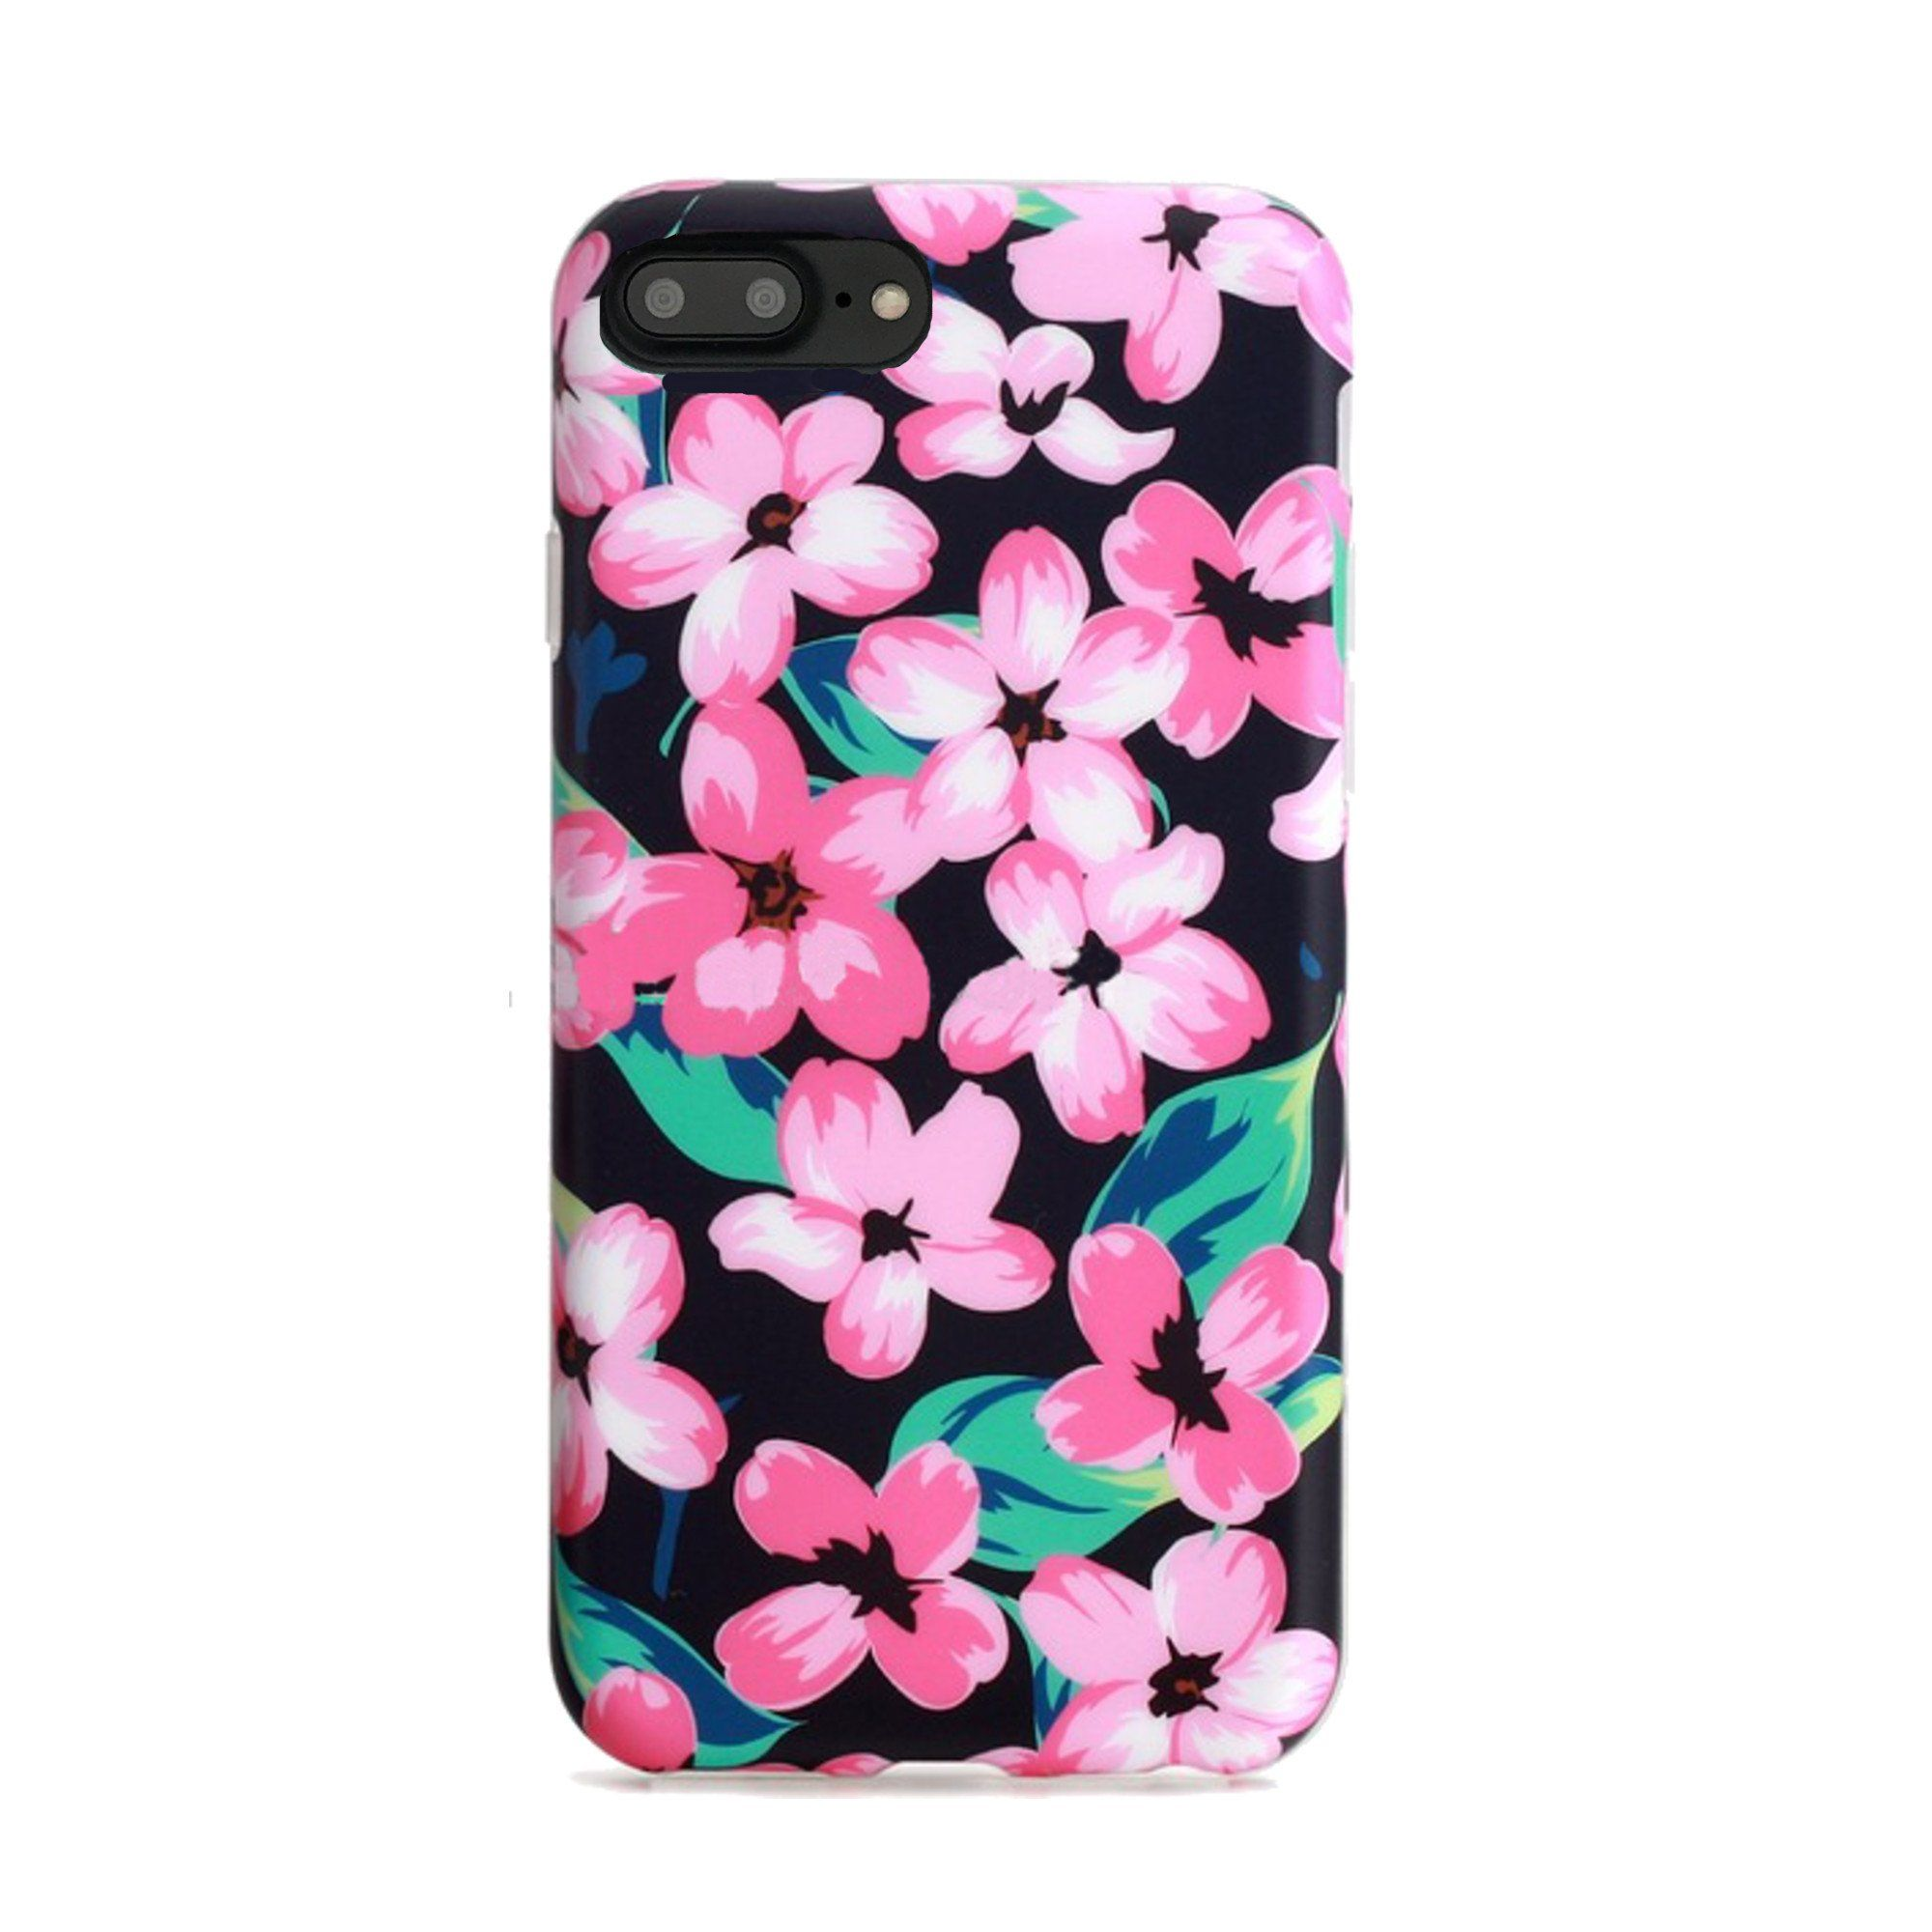 Floral Case for iPhone 7 Plus Nightlily Iphone cases